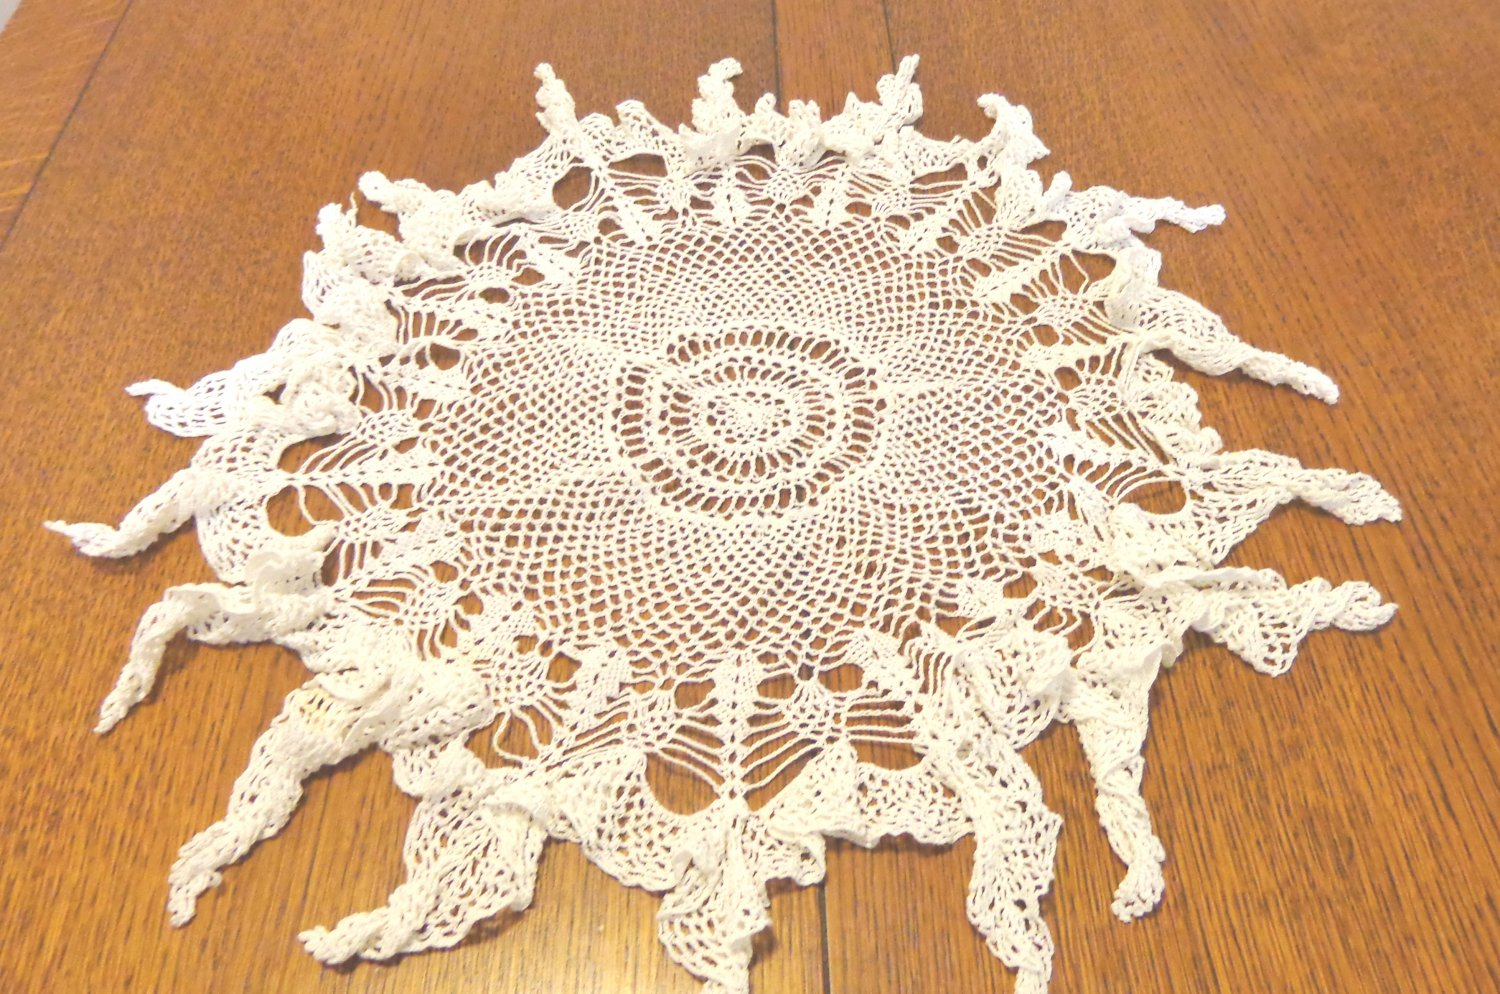 Lacy fishnet crocheted doily large round ruffled edge and hanging points white vintage hc3433